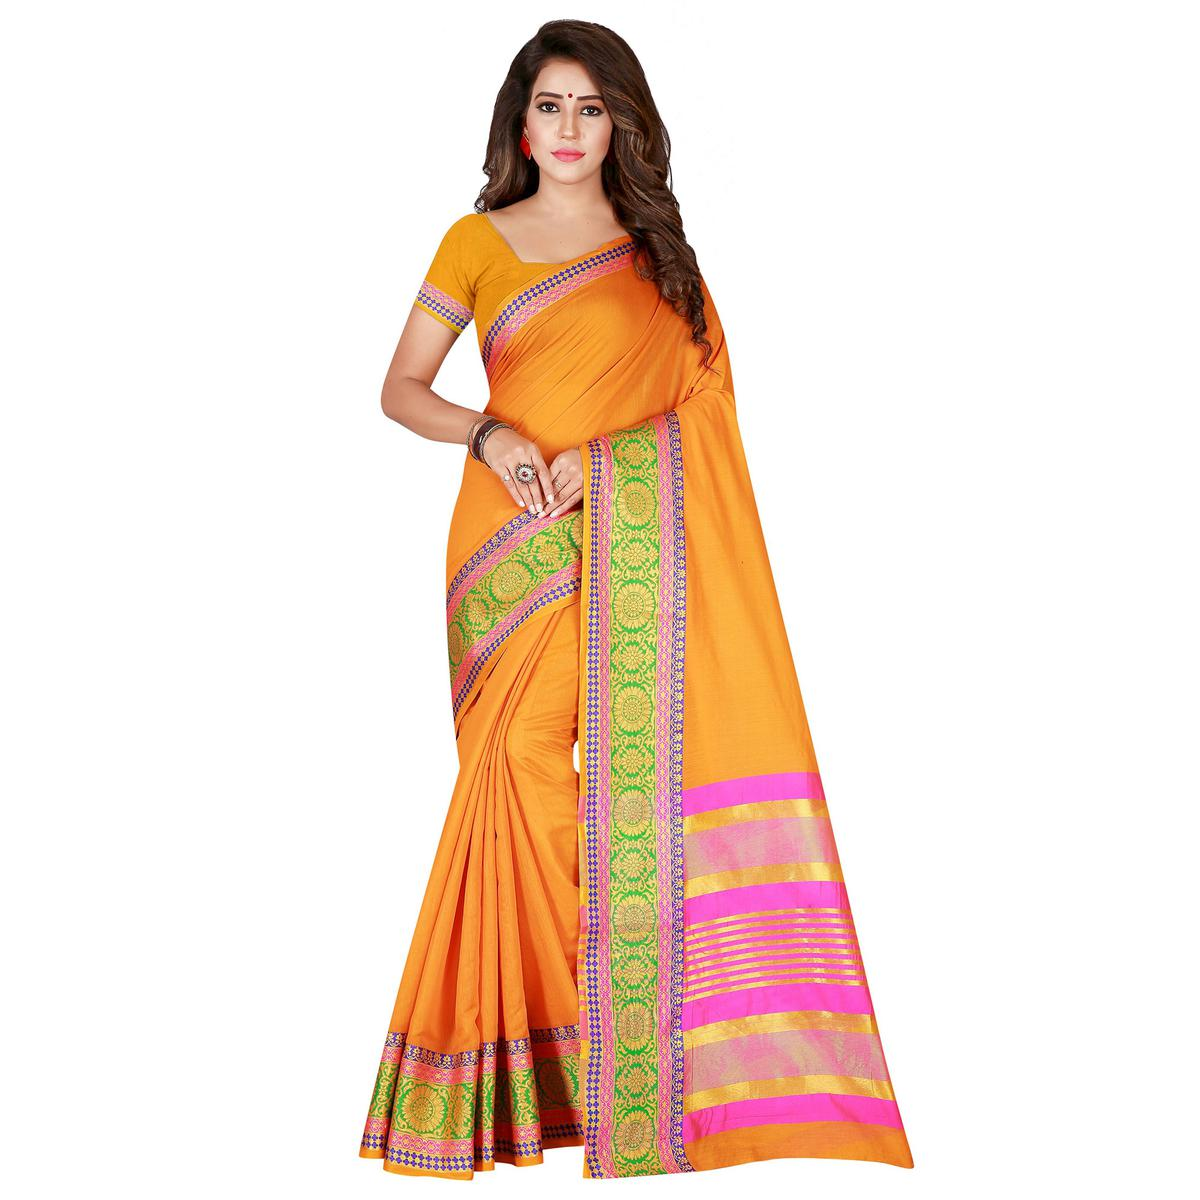 Flattering Mustard Yellow Colored Festive Wear Woven Pure Cotton Saree